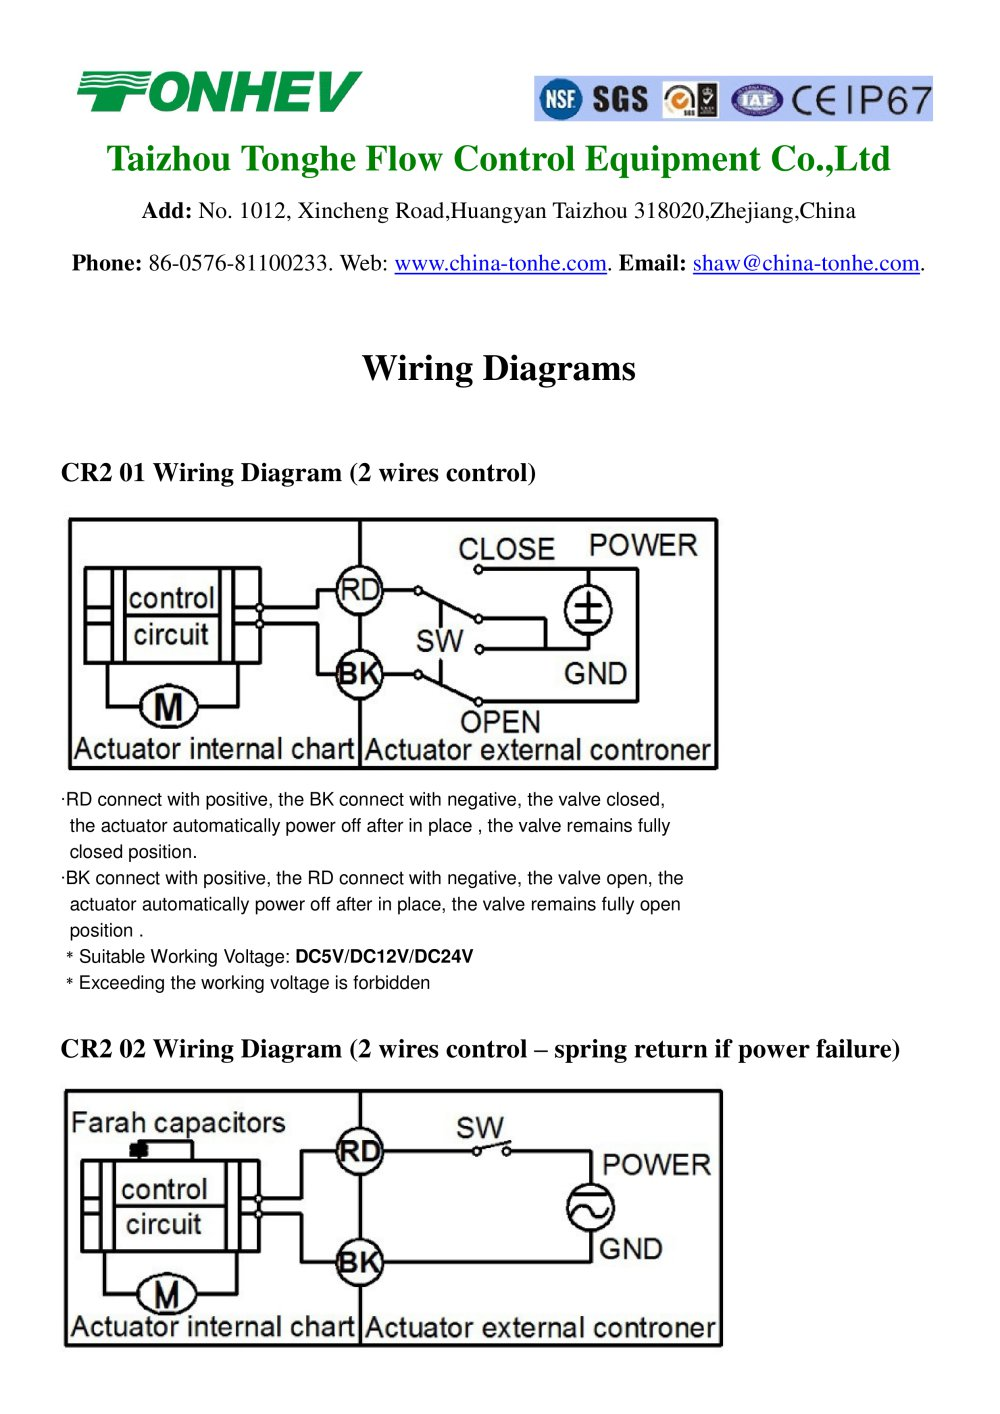 hight resolution of tonhe motorized valve wiring diagrams taizhou tonhe flow control air ride valve wiring diagram tonhe motorized